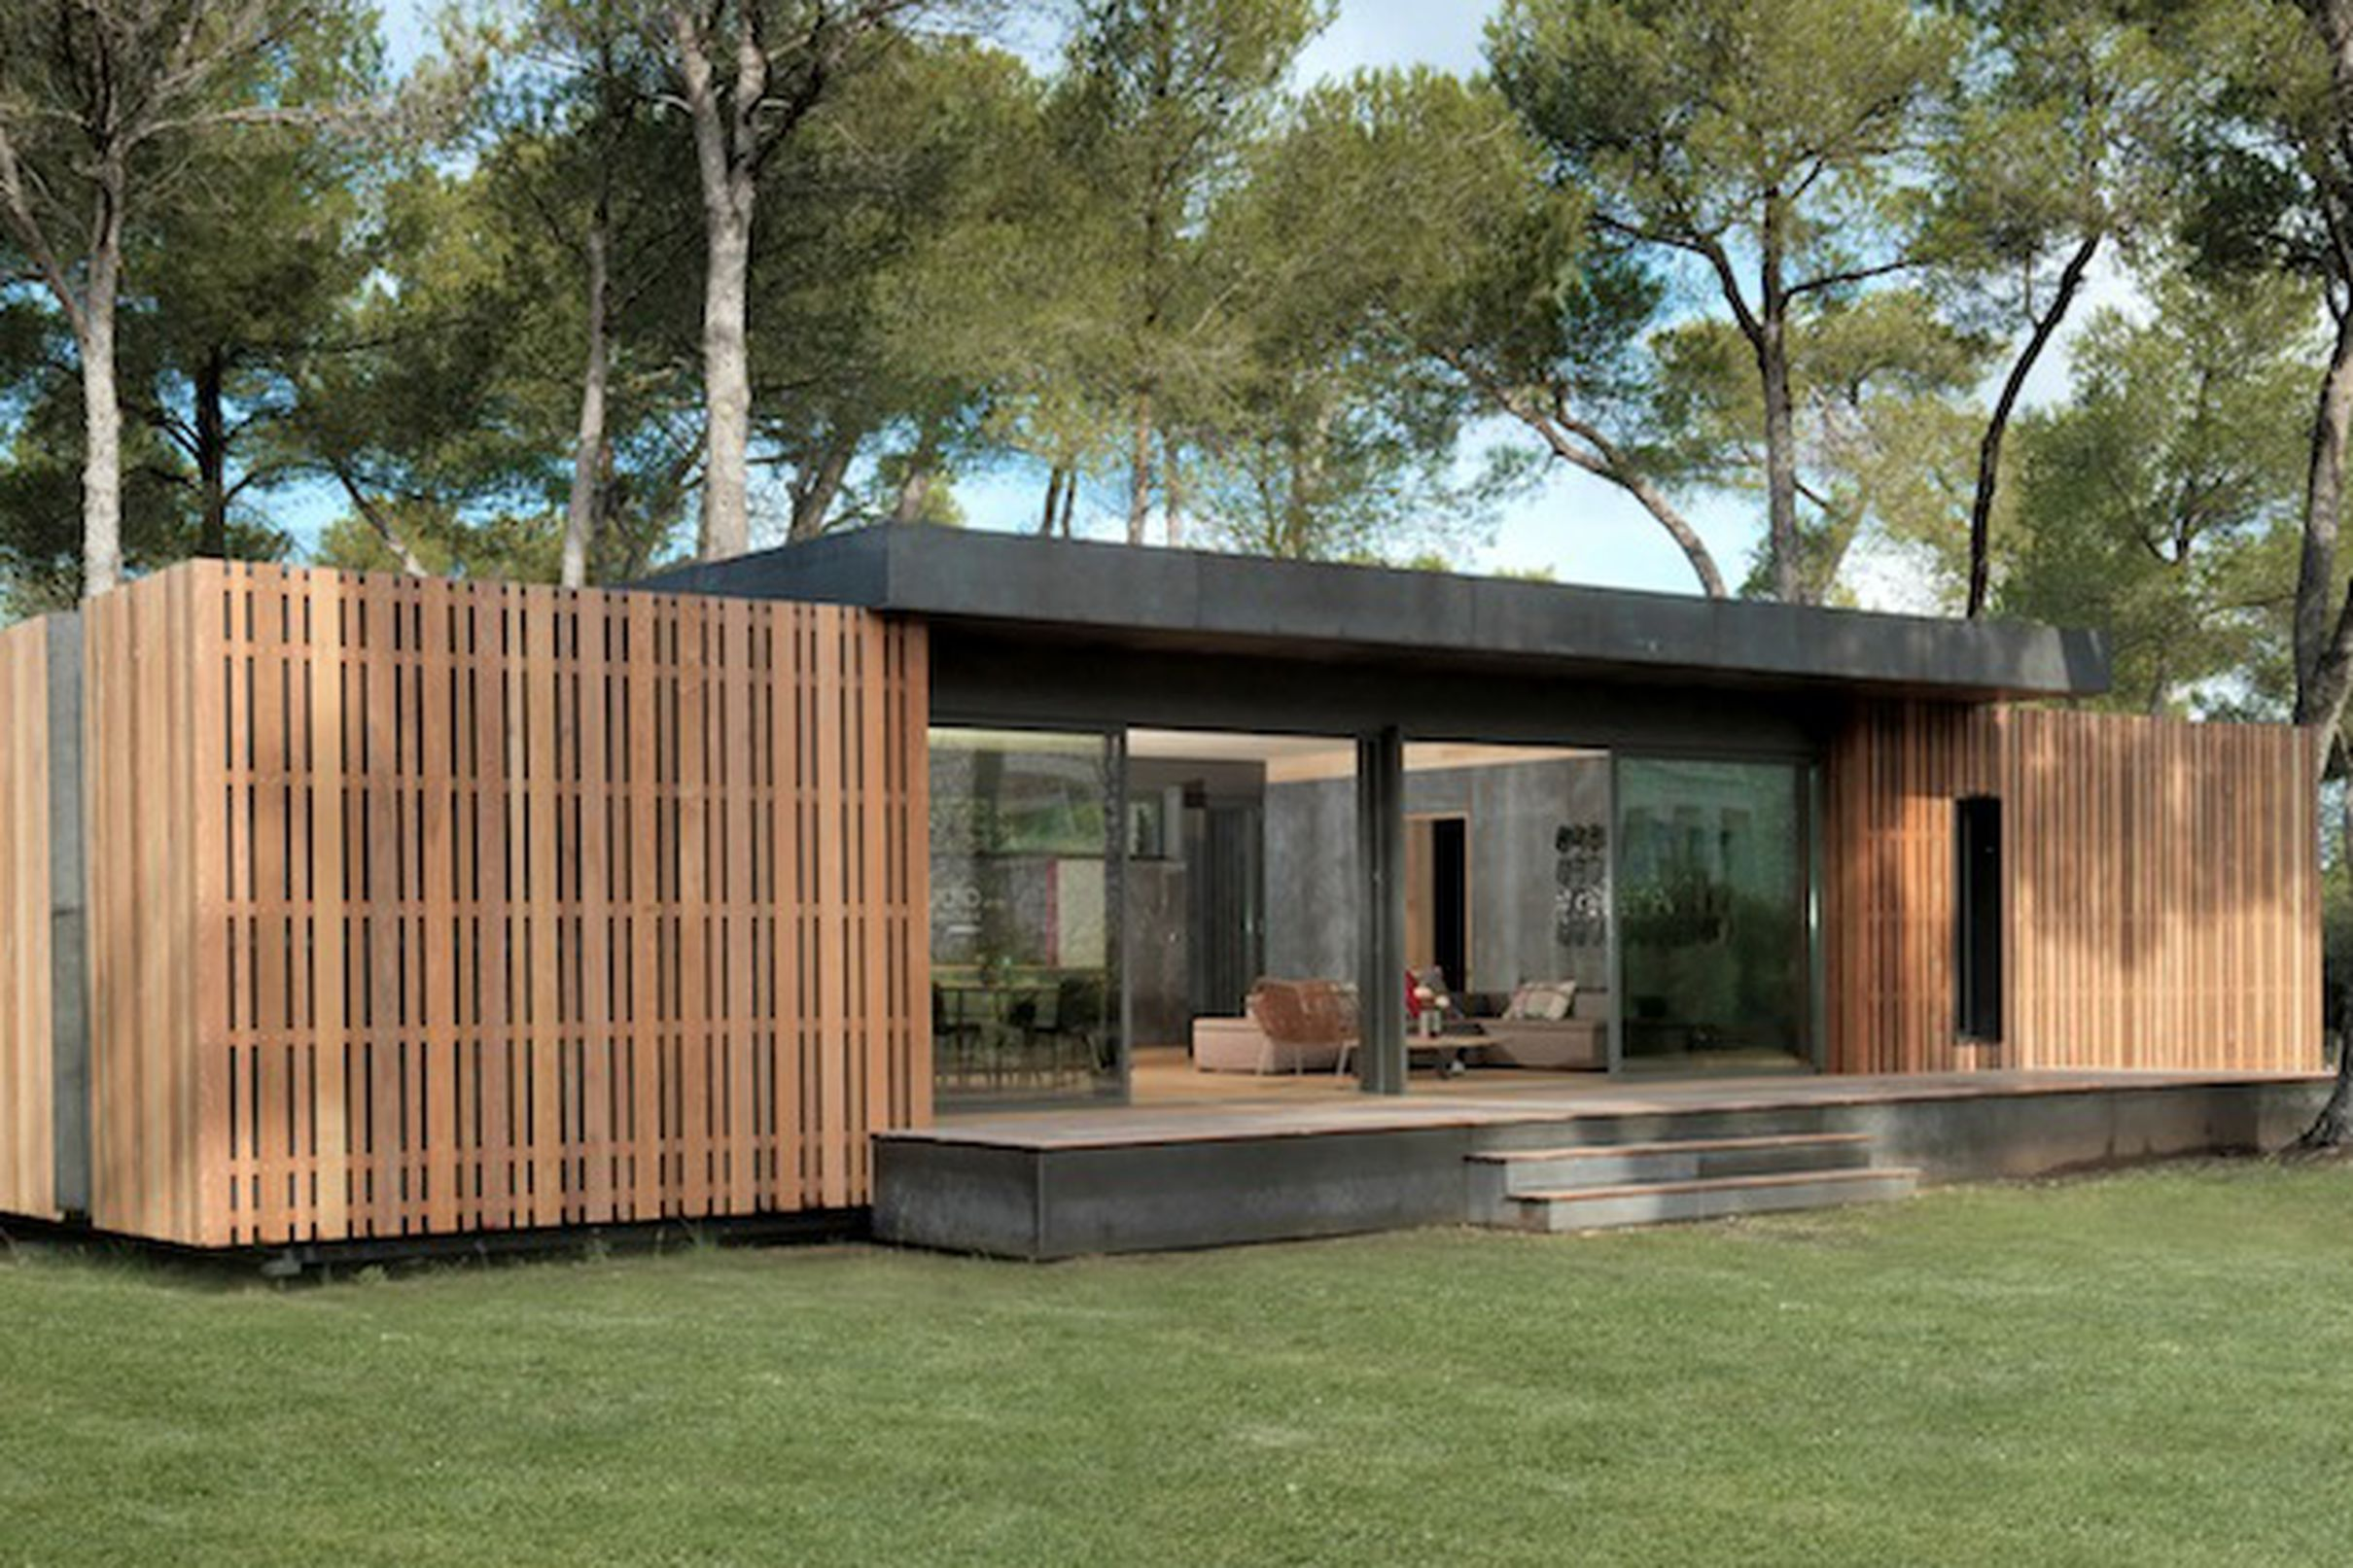 Build This Pop Up House In Four Days With Only A Screwdriver Budinki